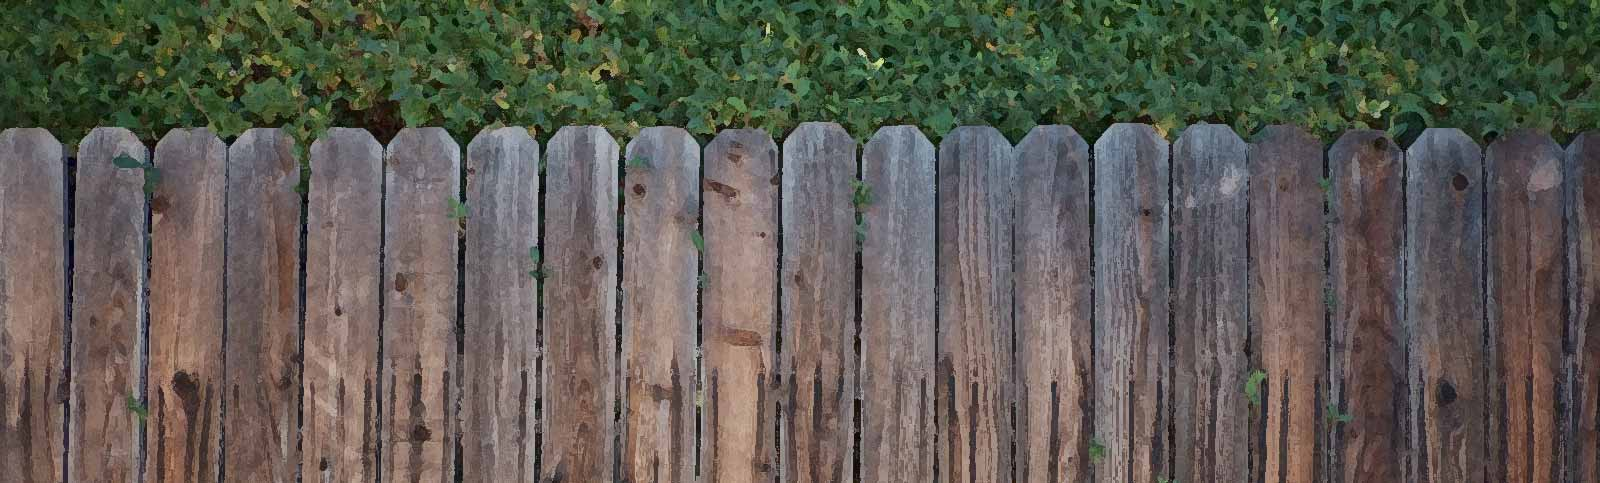 Some Things You Need to Know About Repairing a Fence